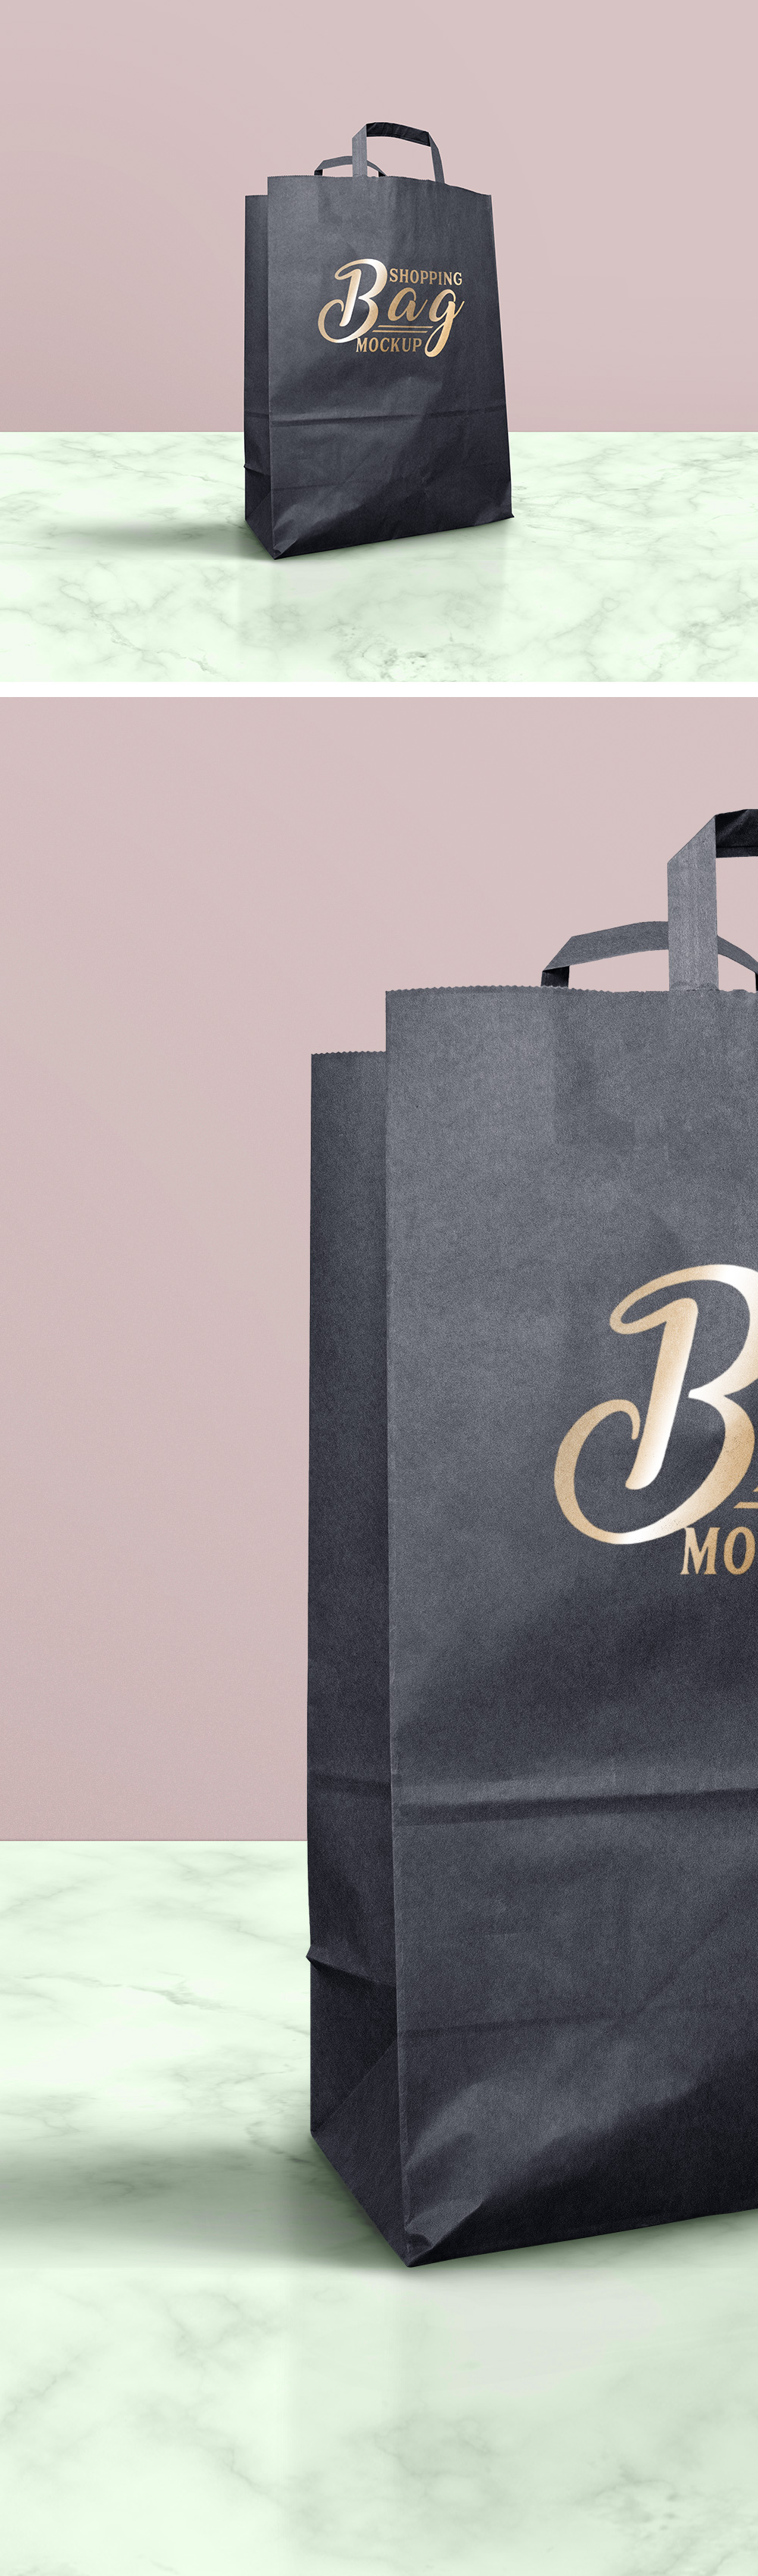 Dark Shopping Bag Mockup